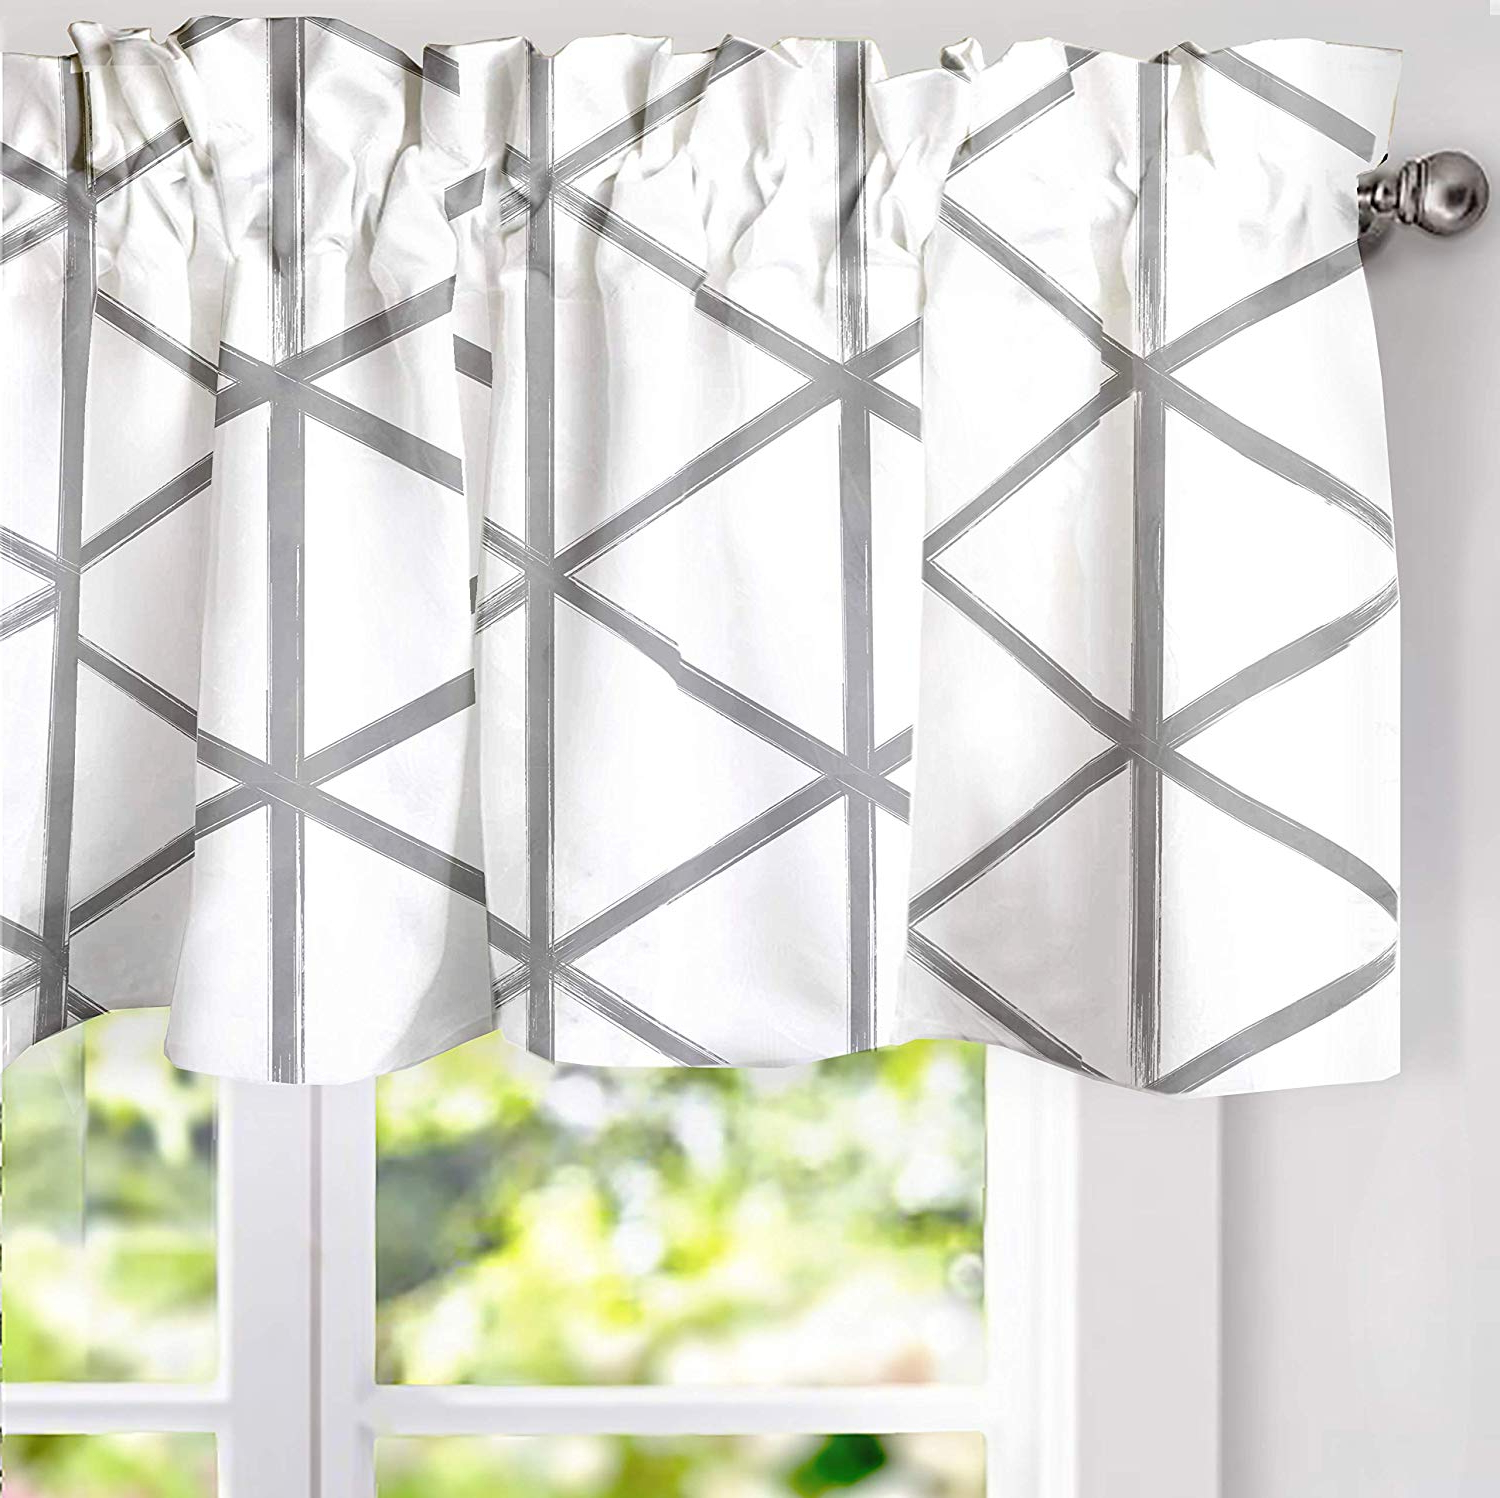 Famous Driftaway Raymond Geometric Triangle Trellis Pattern Lined Thermal Insulated Energy Saving Window Curtain Valance For Living Room, 2 Layer, Rod Regarding Trellis Pattern Window Valances (View 11 of 20)